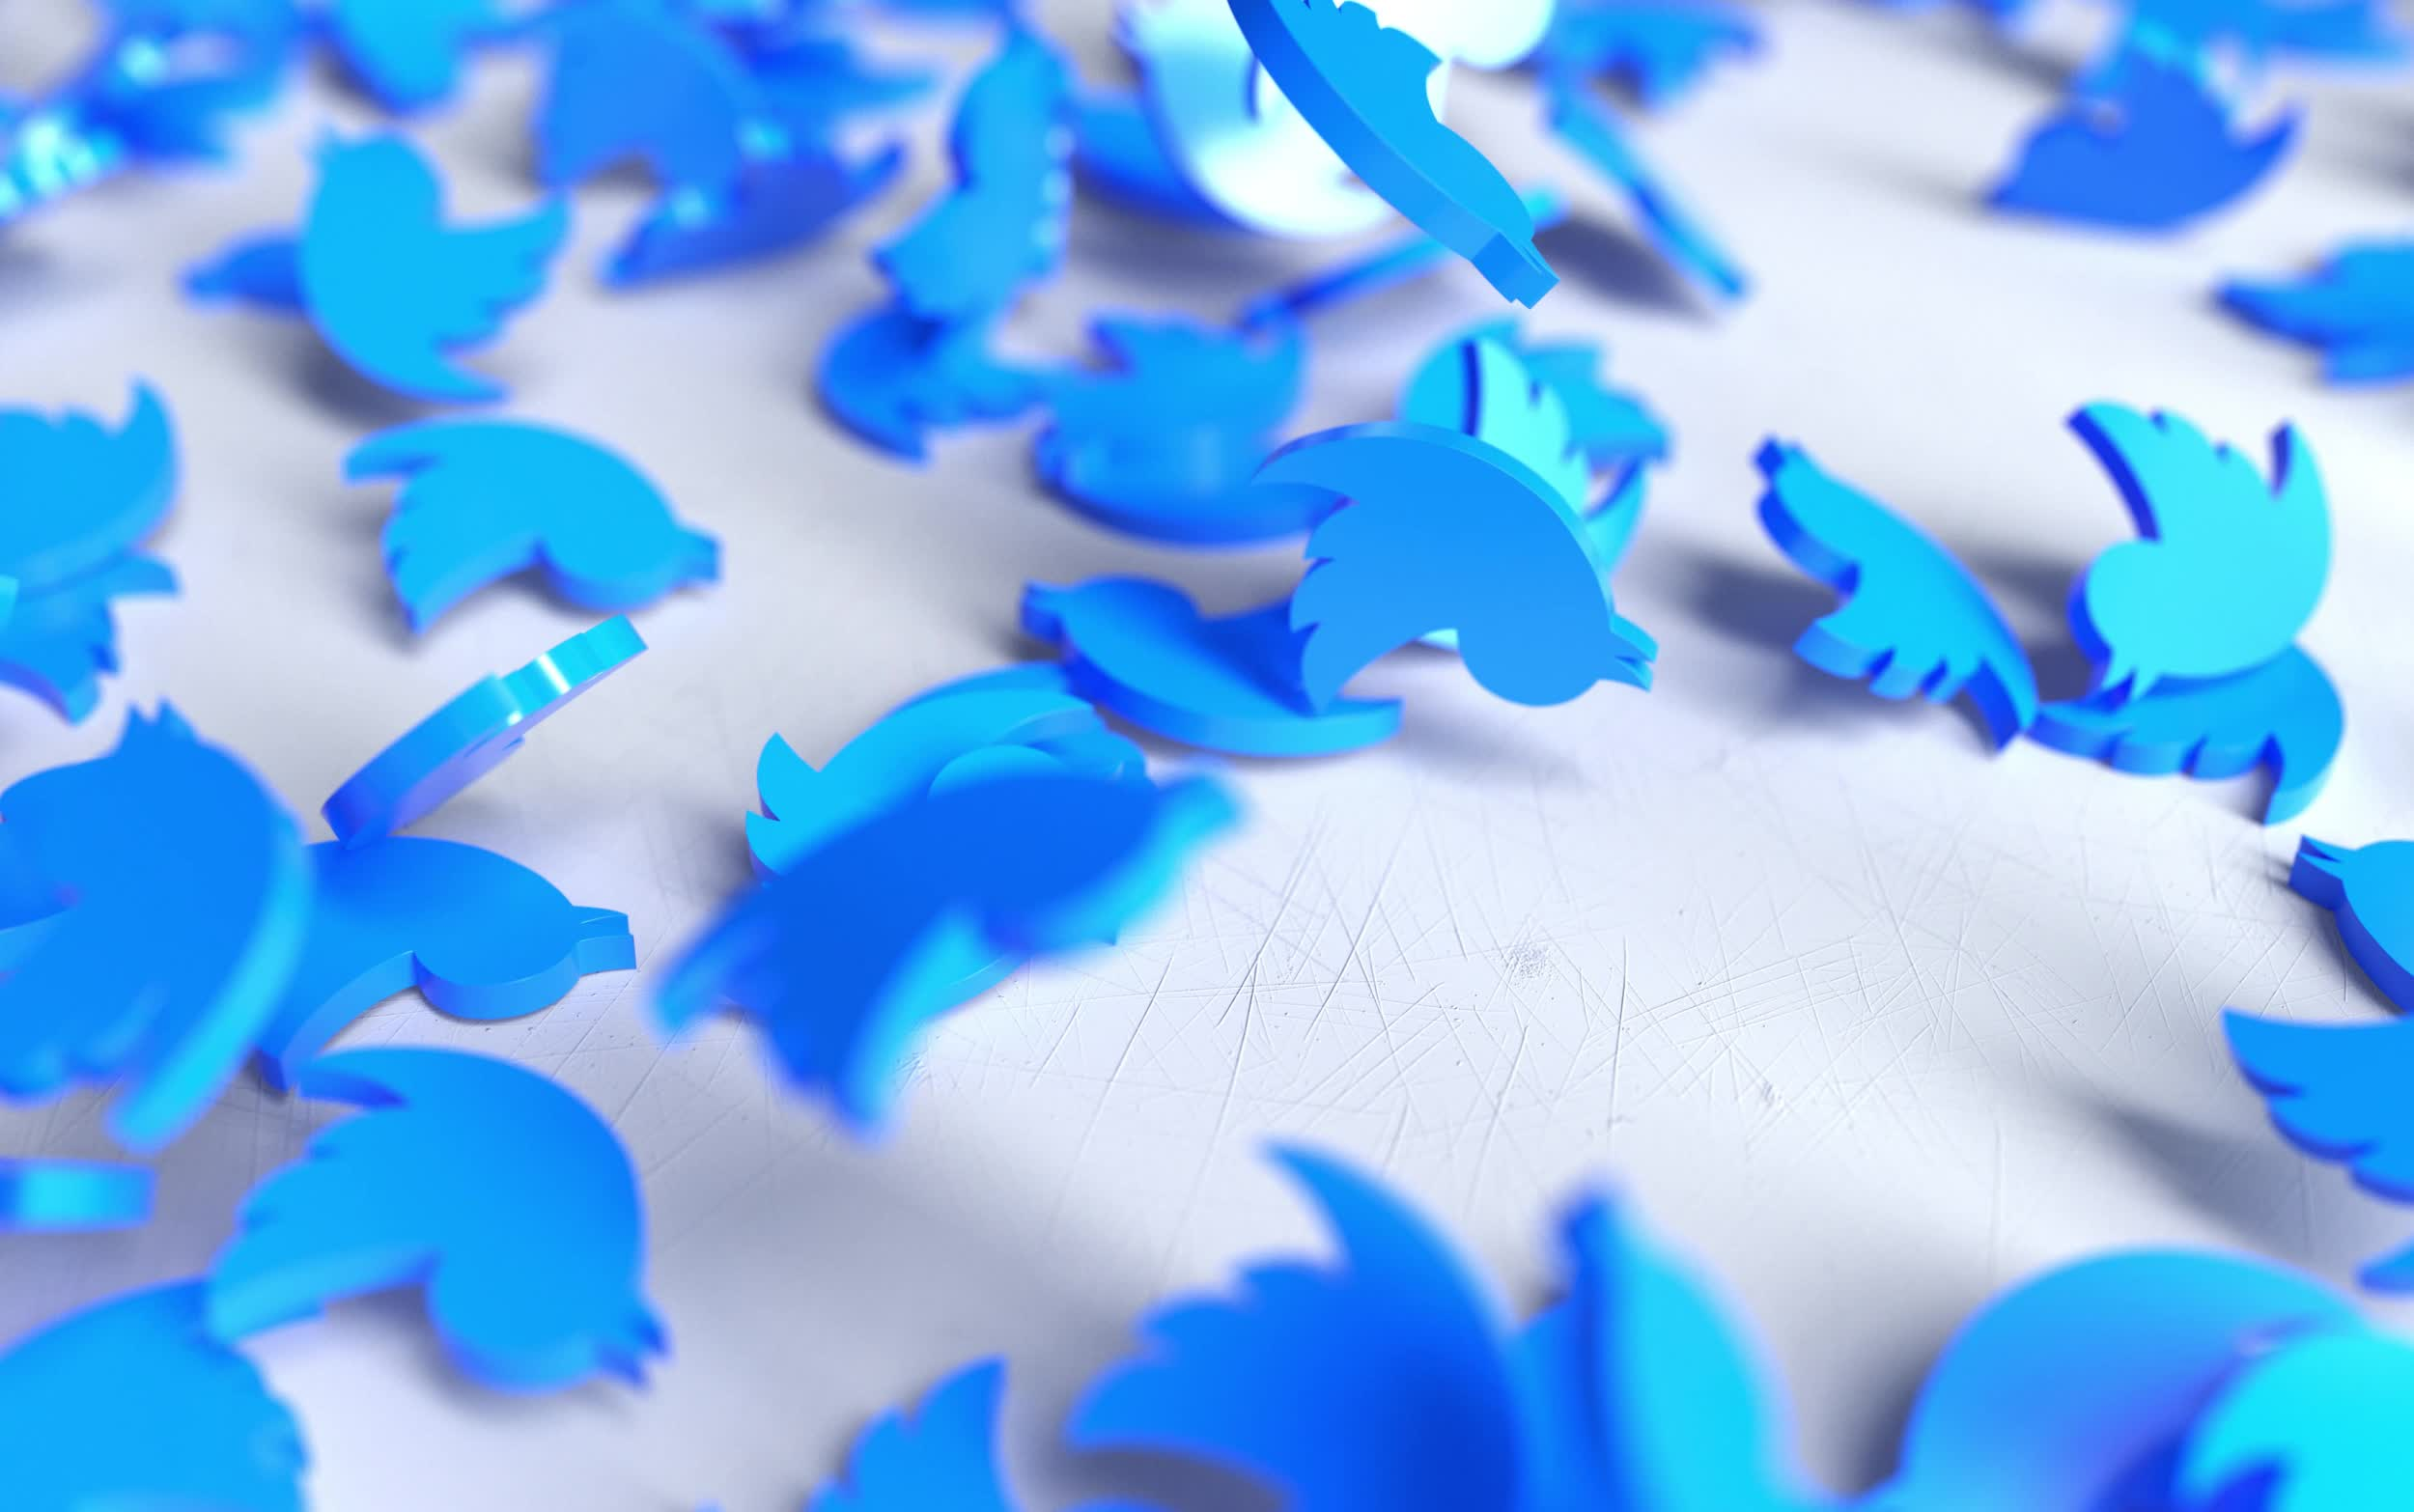 Twitter rolls out Super Followers, letting select creators charge to access their content